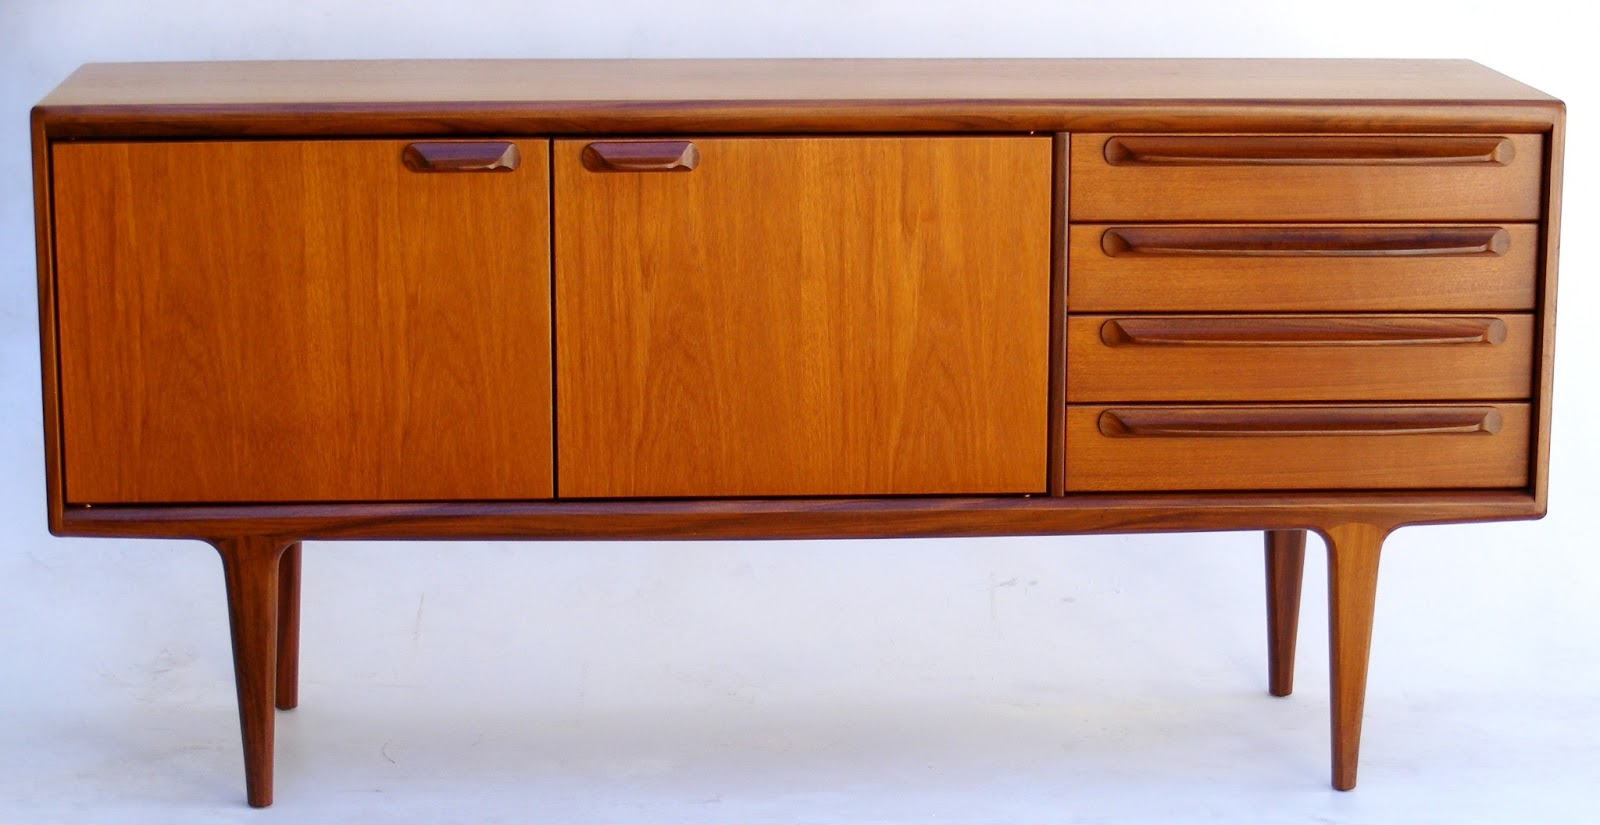 ... , Maker: Younger Furniture (United Kingdom) Excellent condition